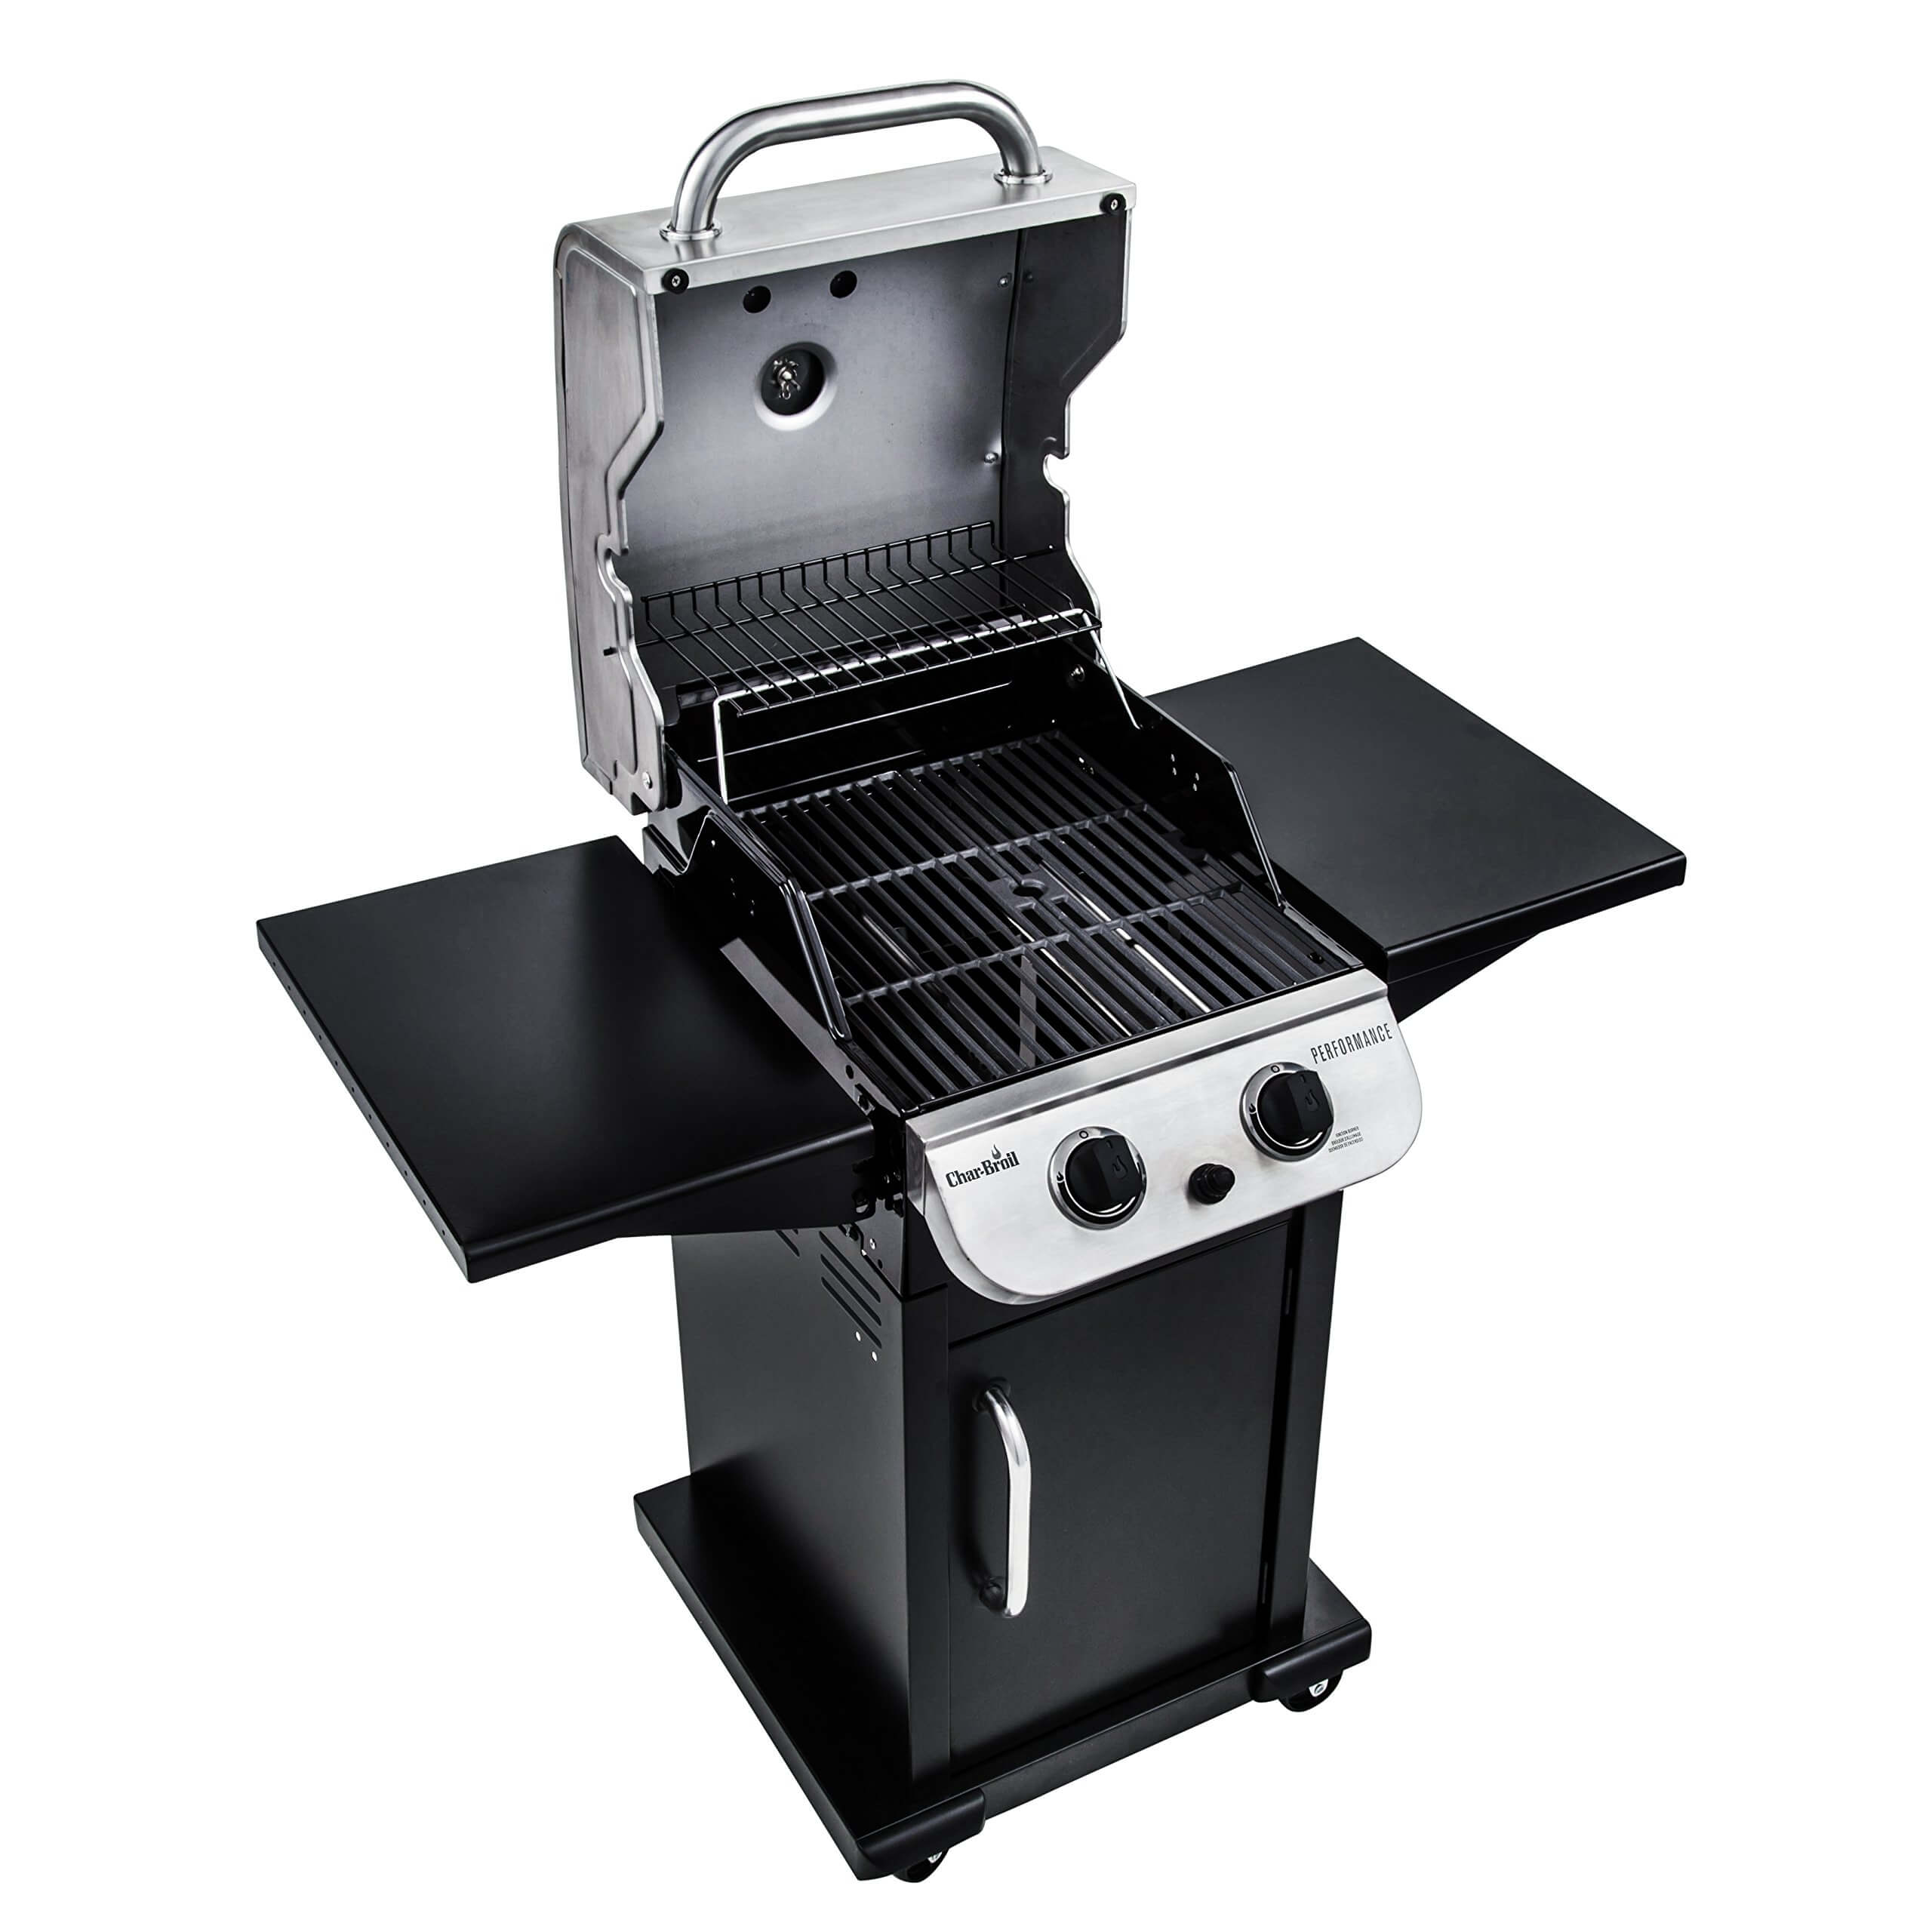 best gas grills under $500, best price on char broil gas grills